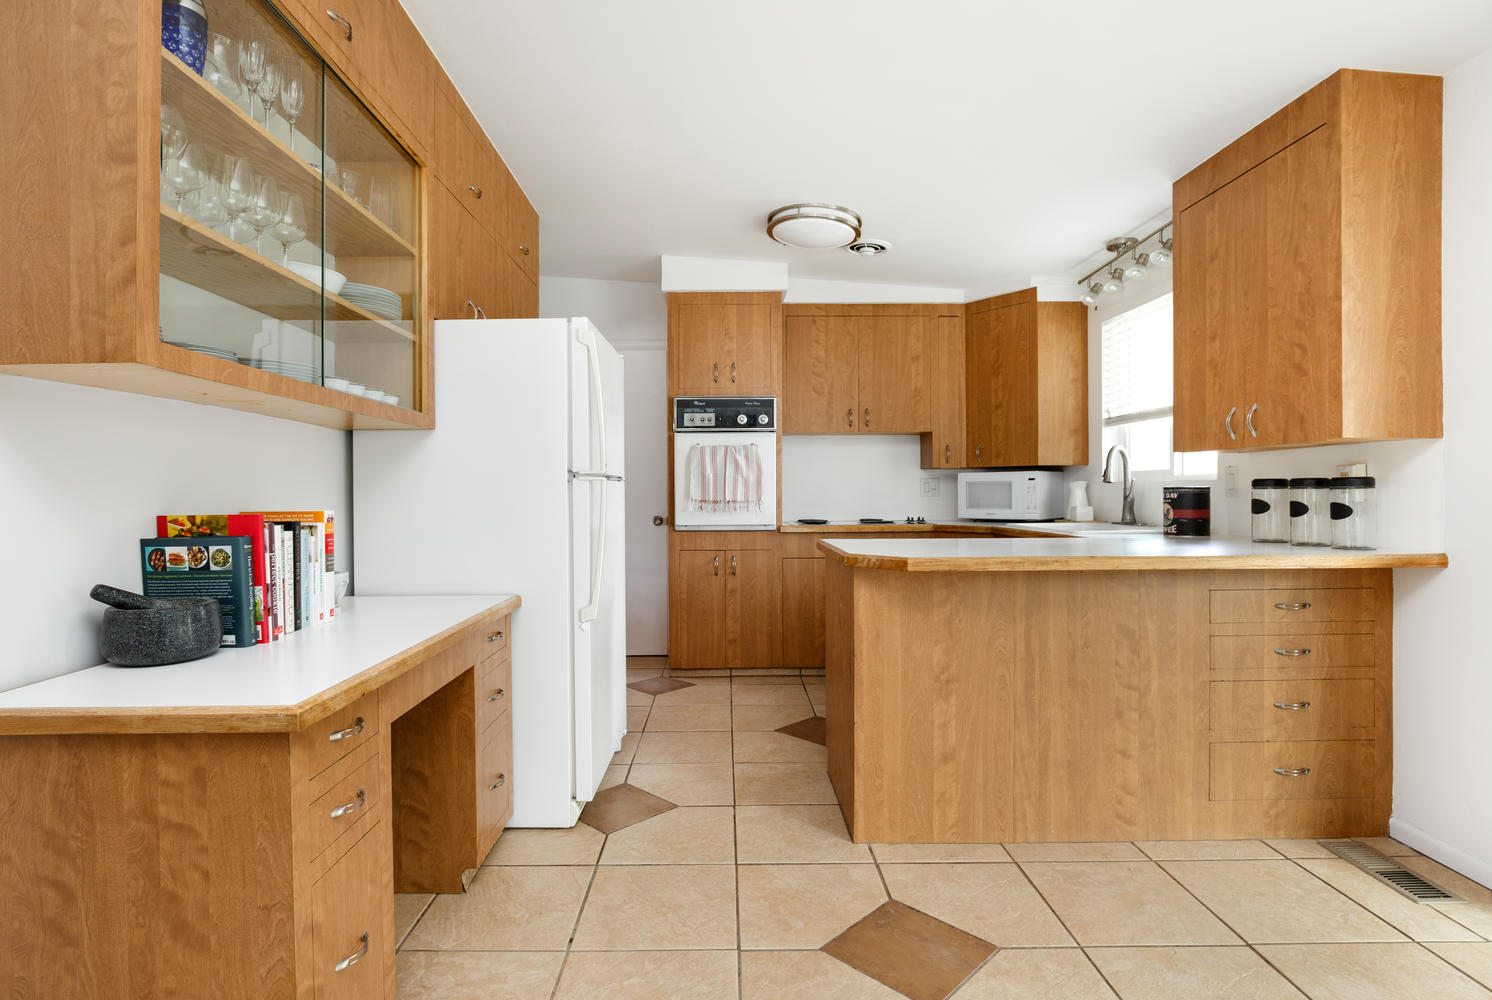 606 E 4350 Kitchen.jpg